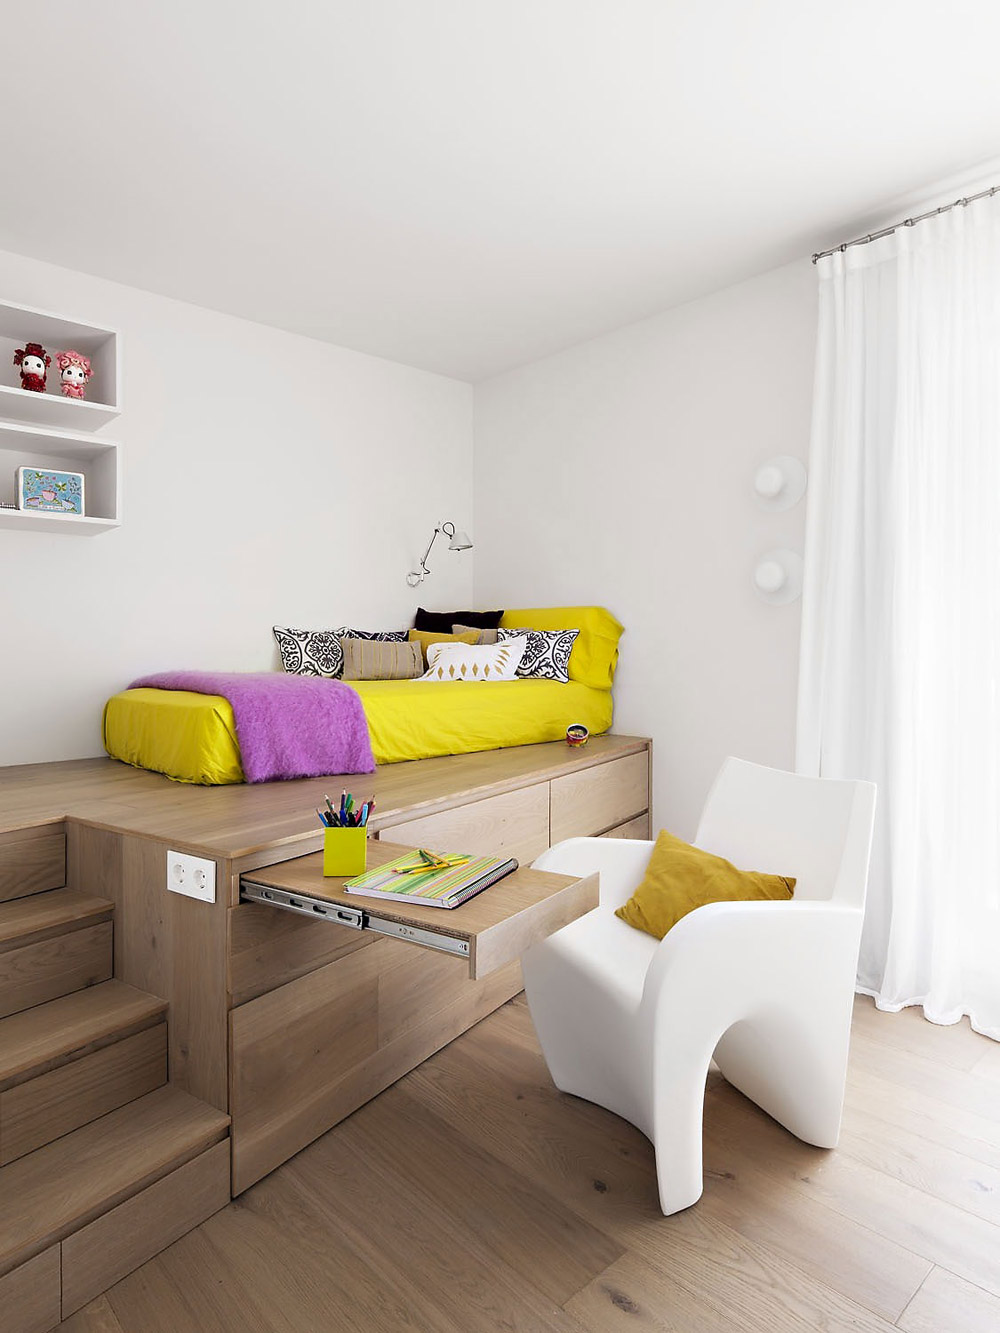 Bedroom, Vivienda en Llaveneres by Susanna Cots